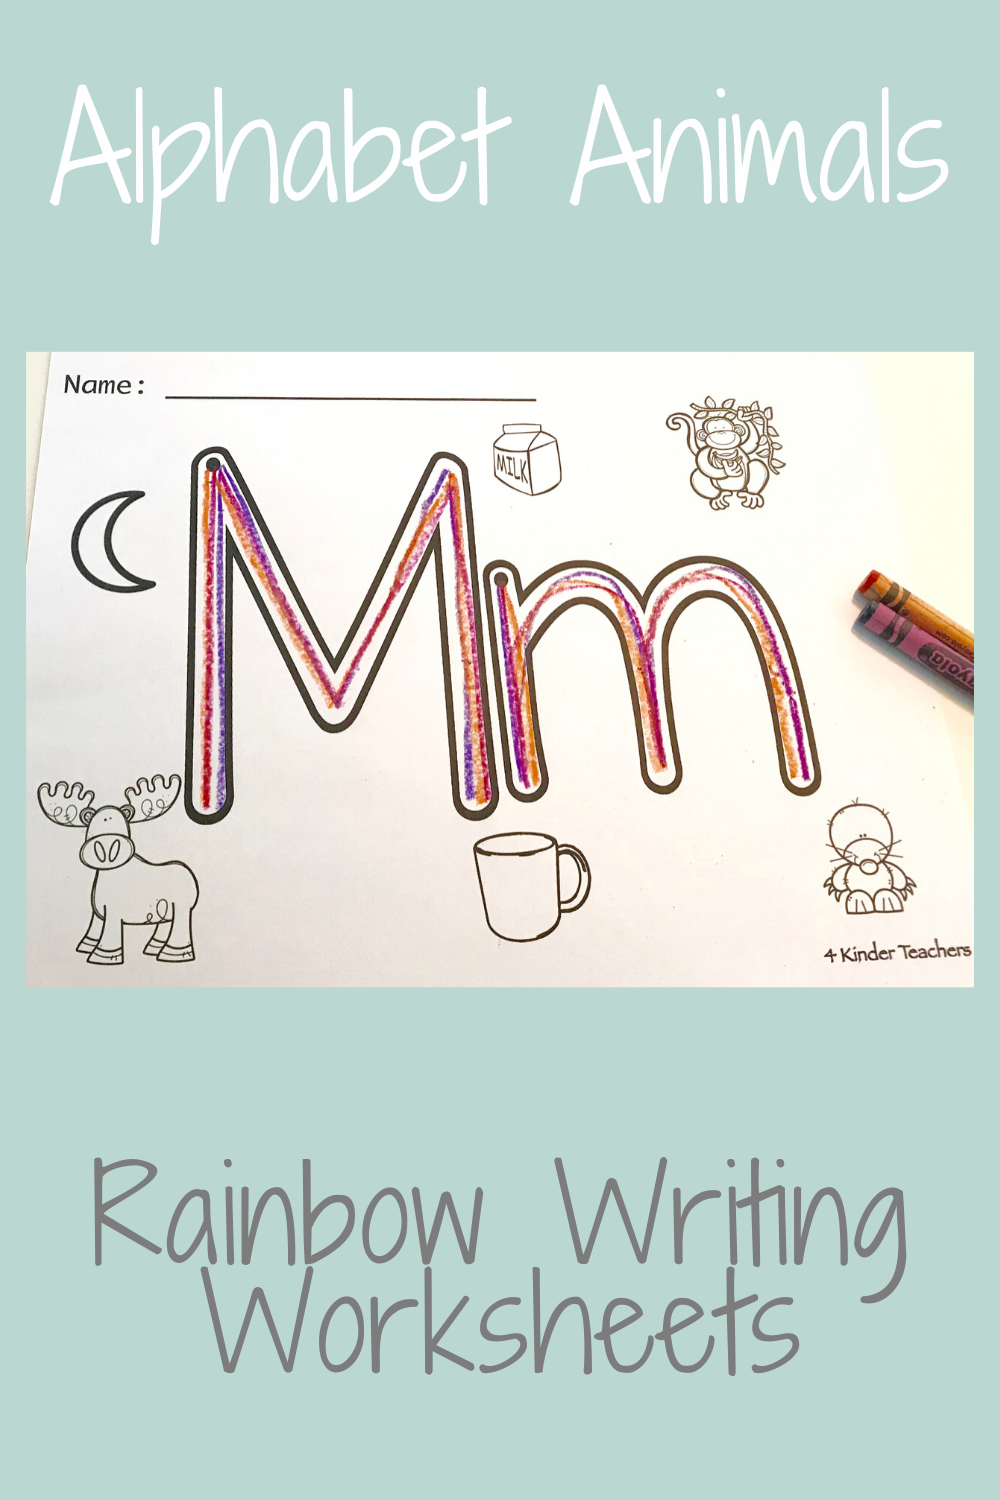 What Is Rainbow Writing?